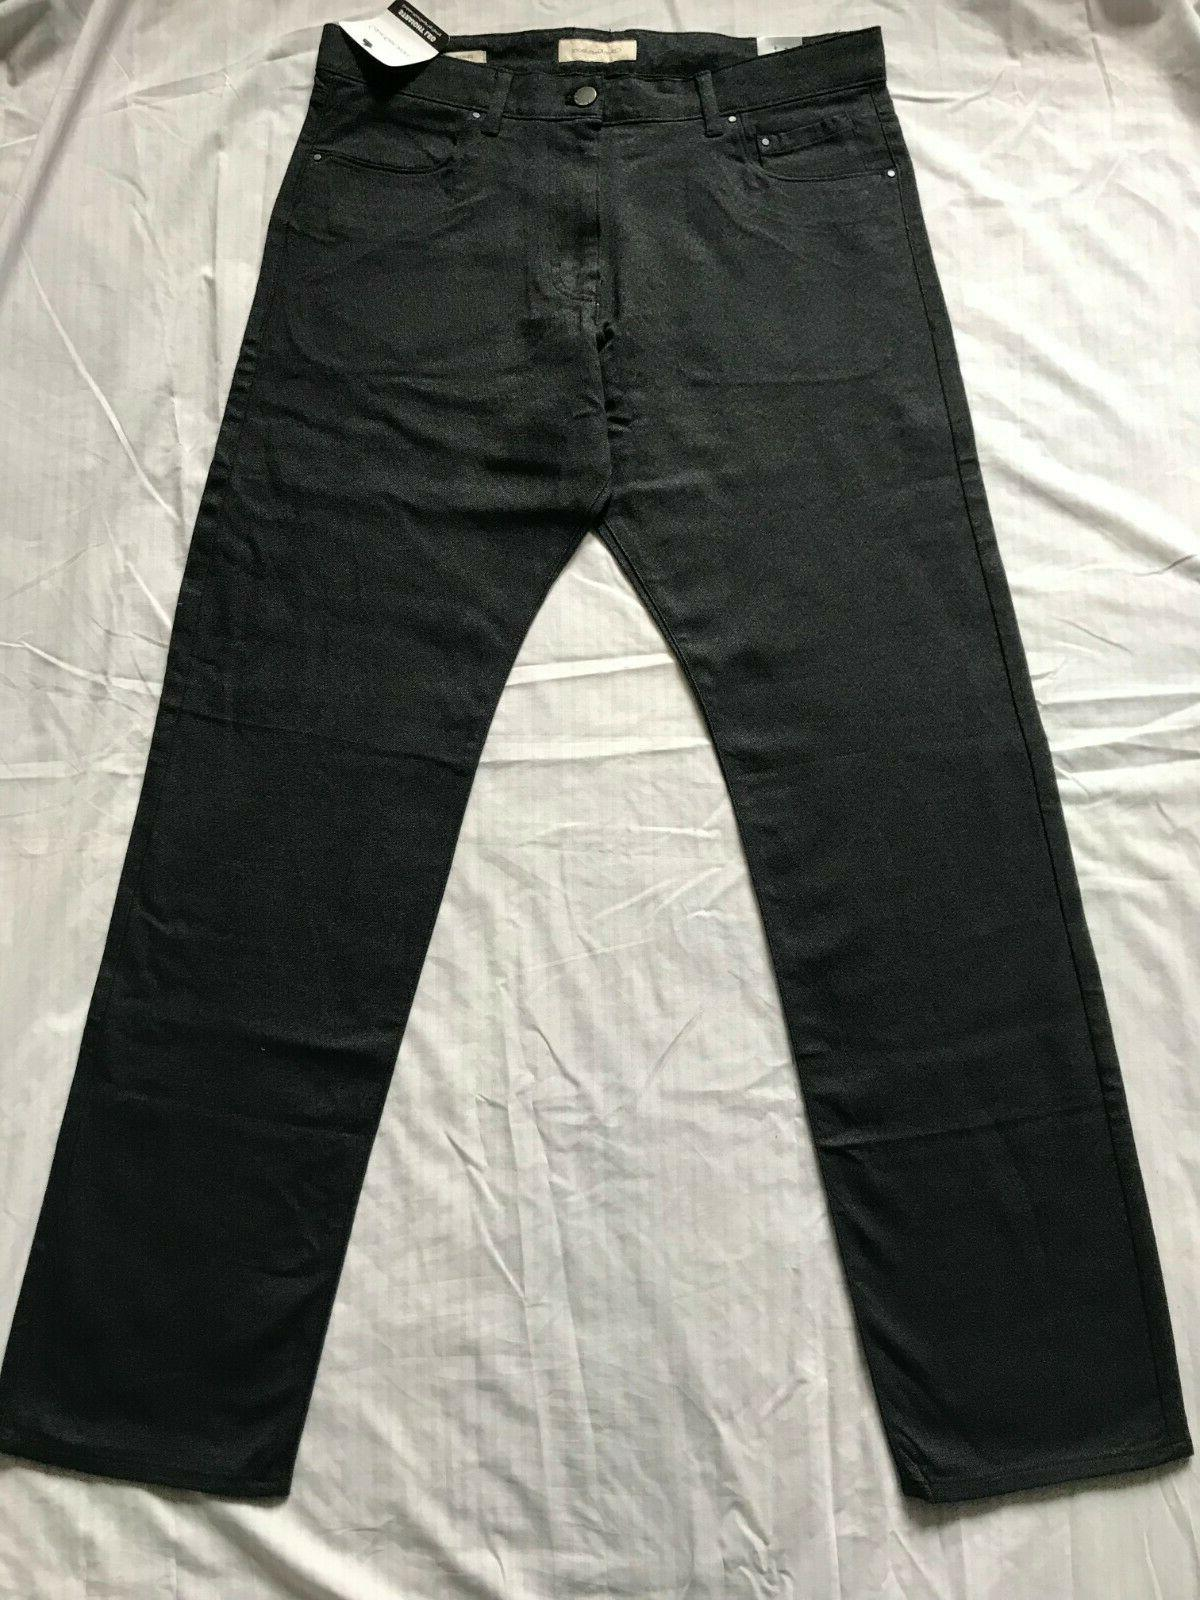 CALVIN JEANS 5 PANT,Variety